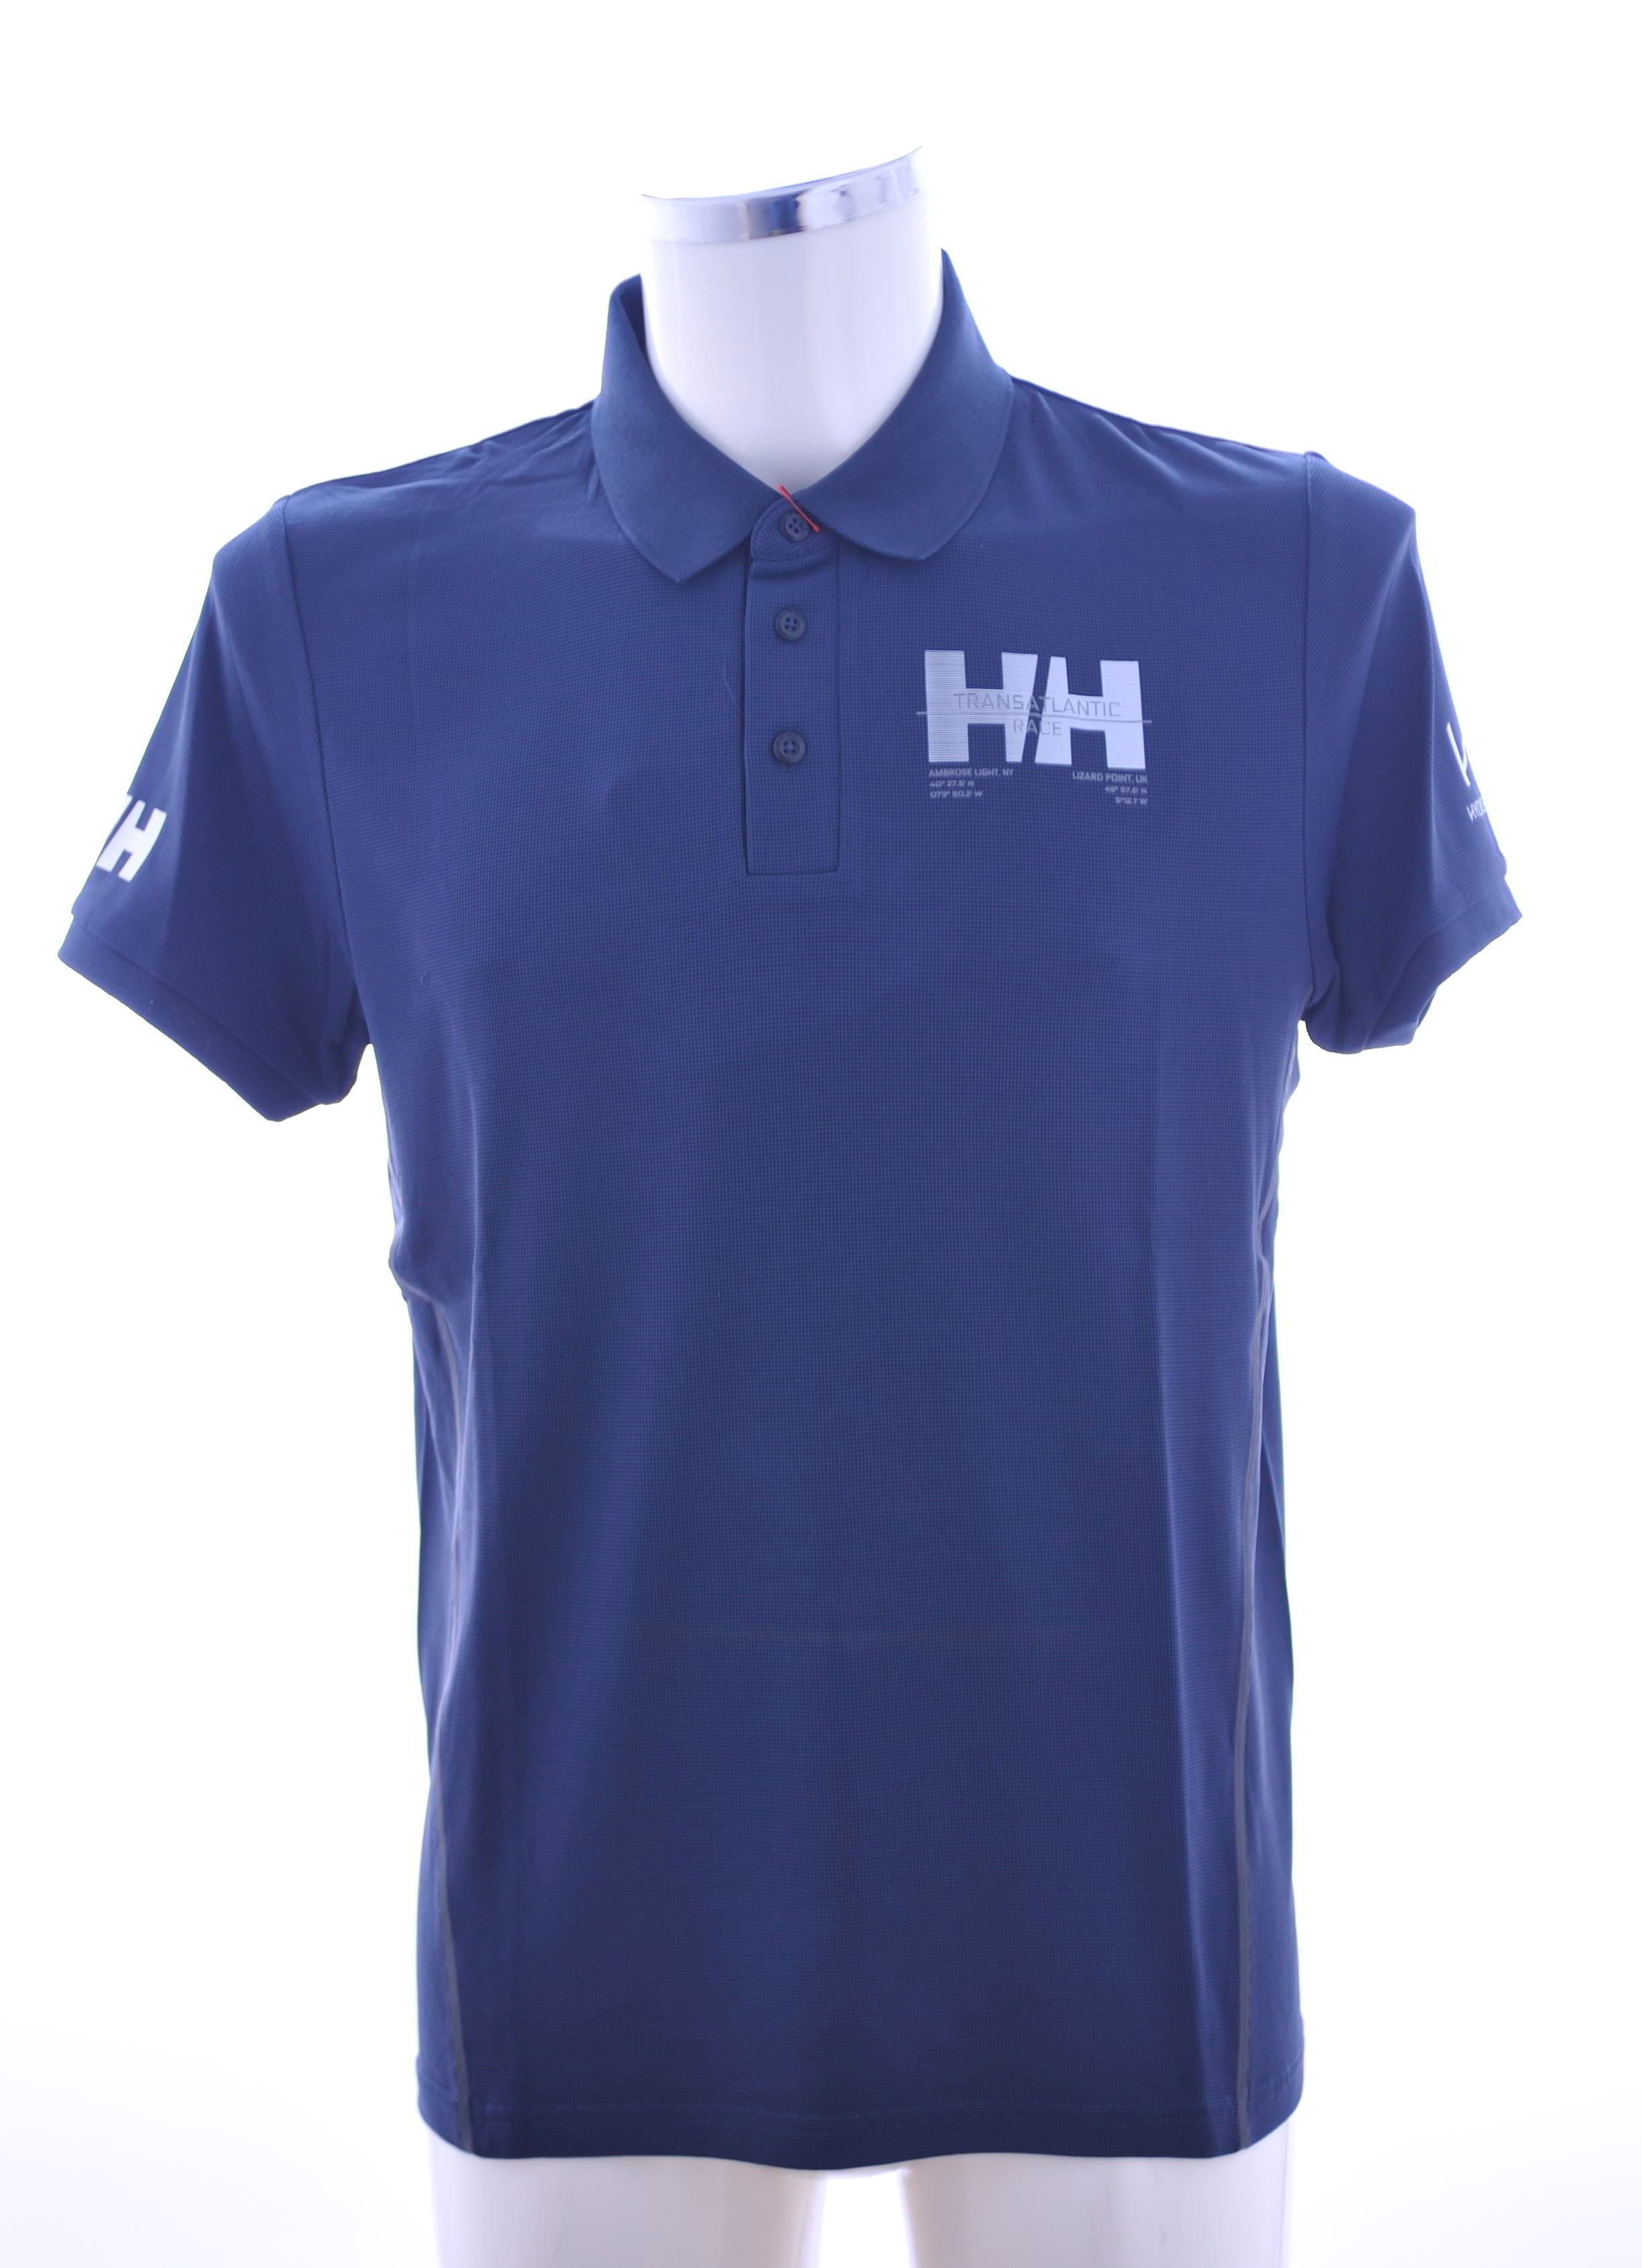 Immagine di HP RACING POLO NAVY